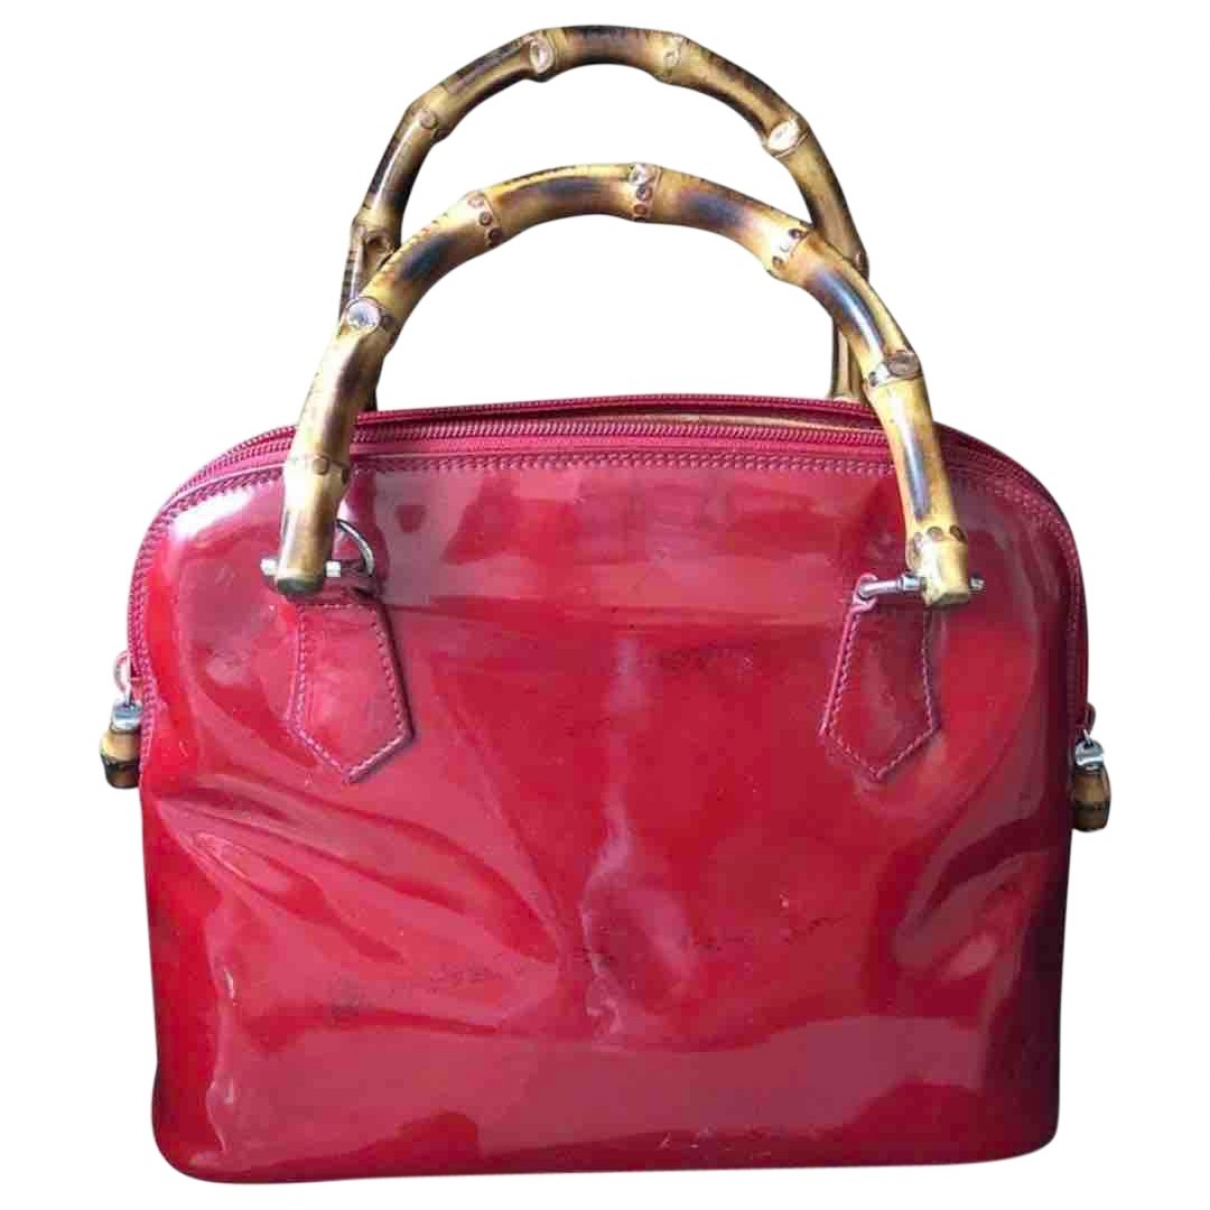 Gucci Bamboo Red Patent leather handbag for Women \N